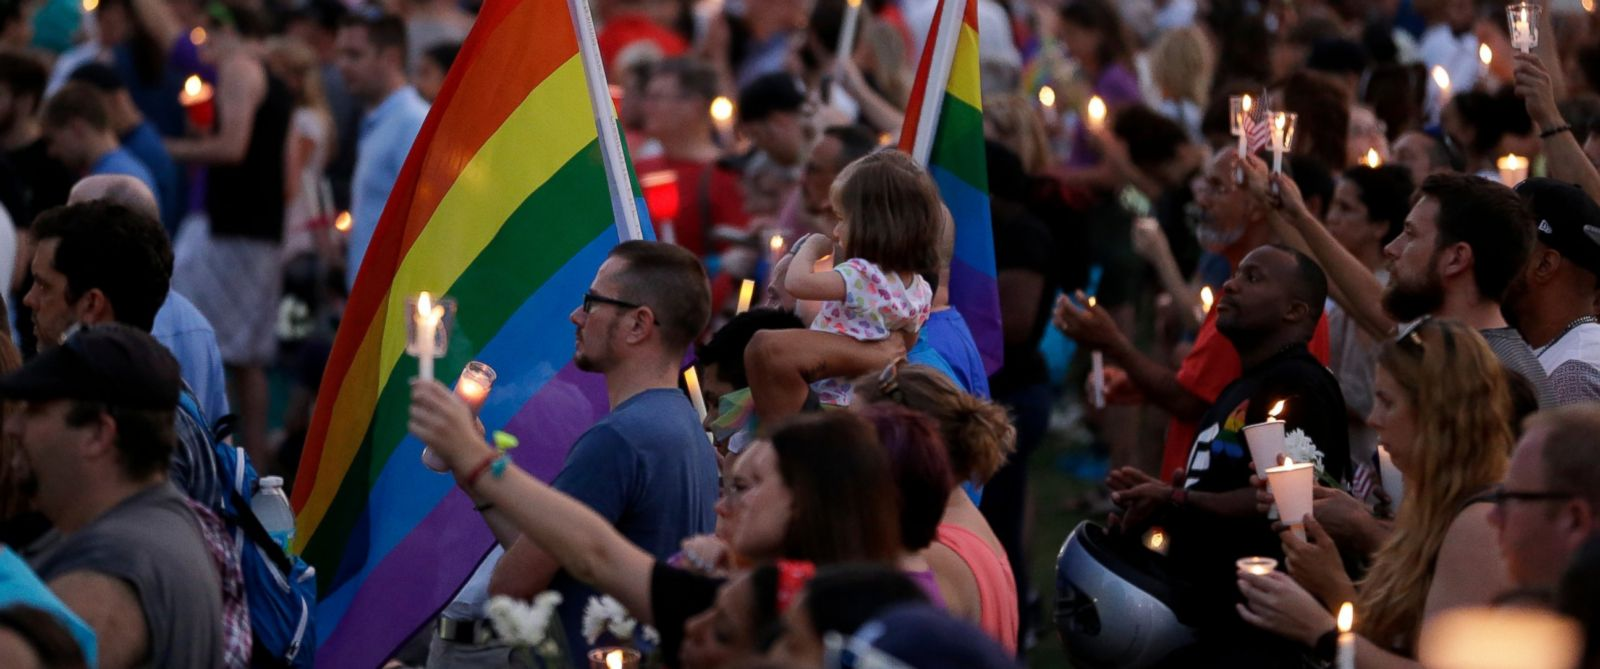 Orlando Strong Thousands Gather At Vigil For Slain Victims ABC News